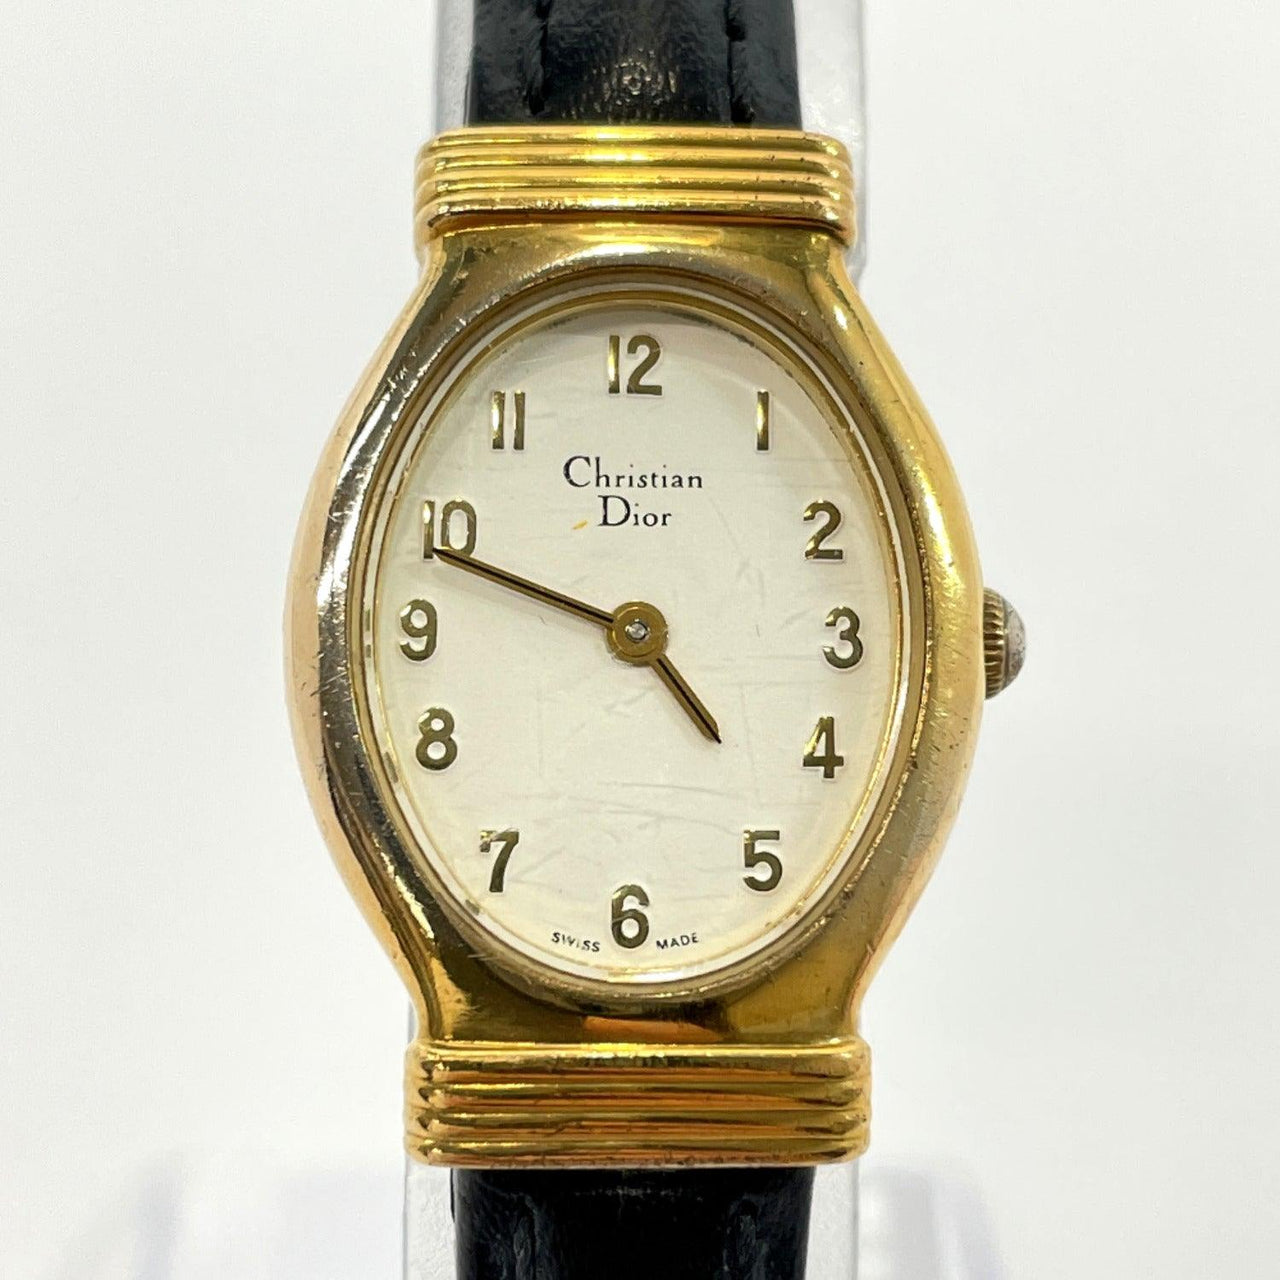 Christian Dior Watches 3009 quartz vintage Stainless Steel gold Women Used